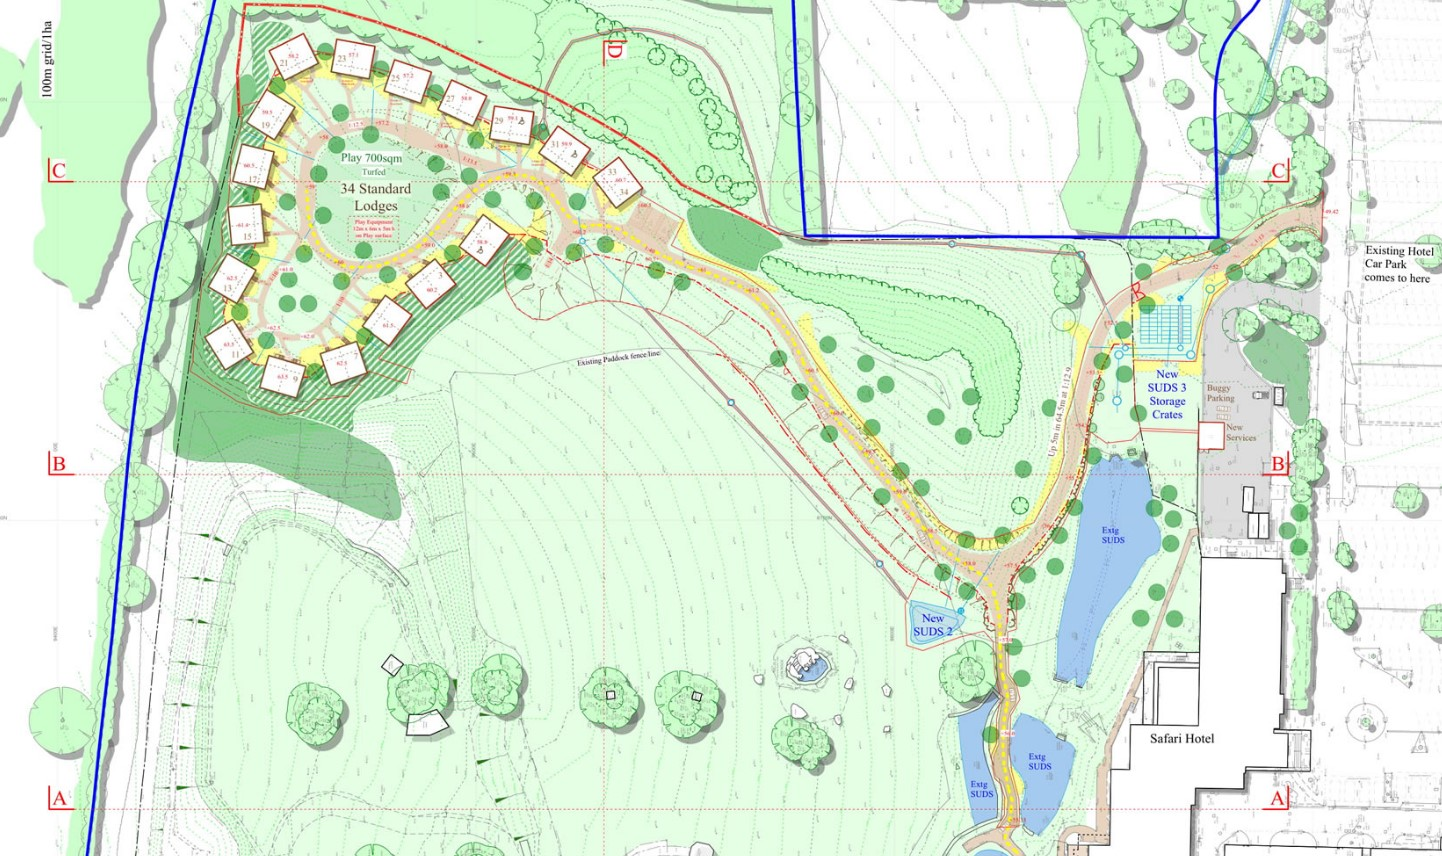 34 Lodges will be arriving at the perimeter at Chessington in 2019 / 2020